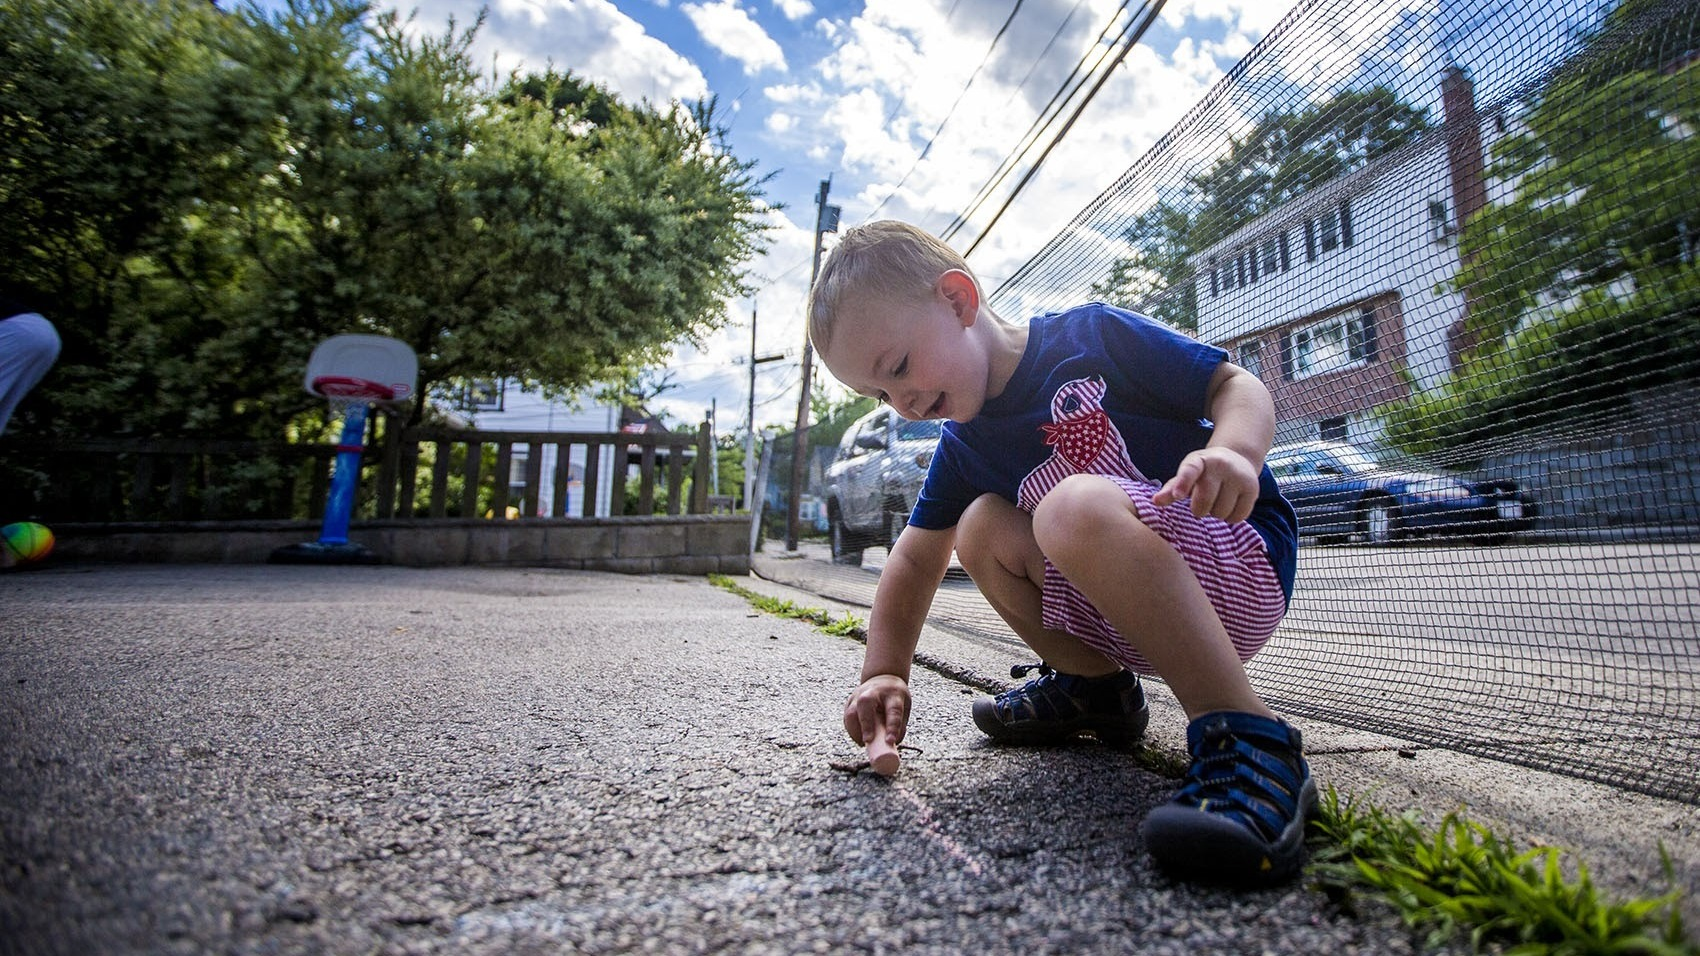 Two-year-old Robbie Klein has hemophilia, a medical condition that interferes with his blood